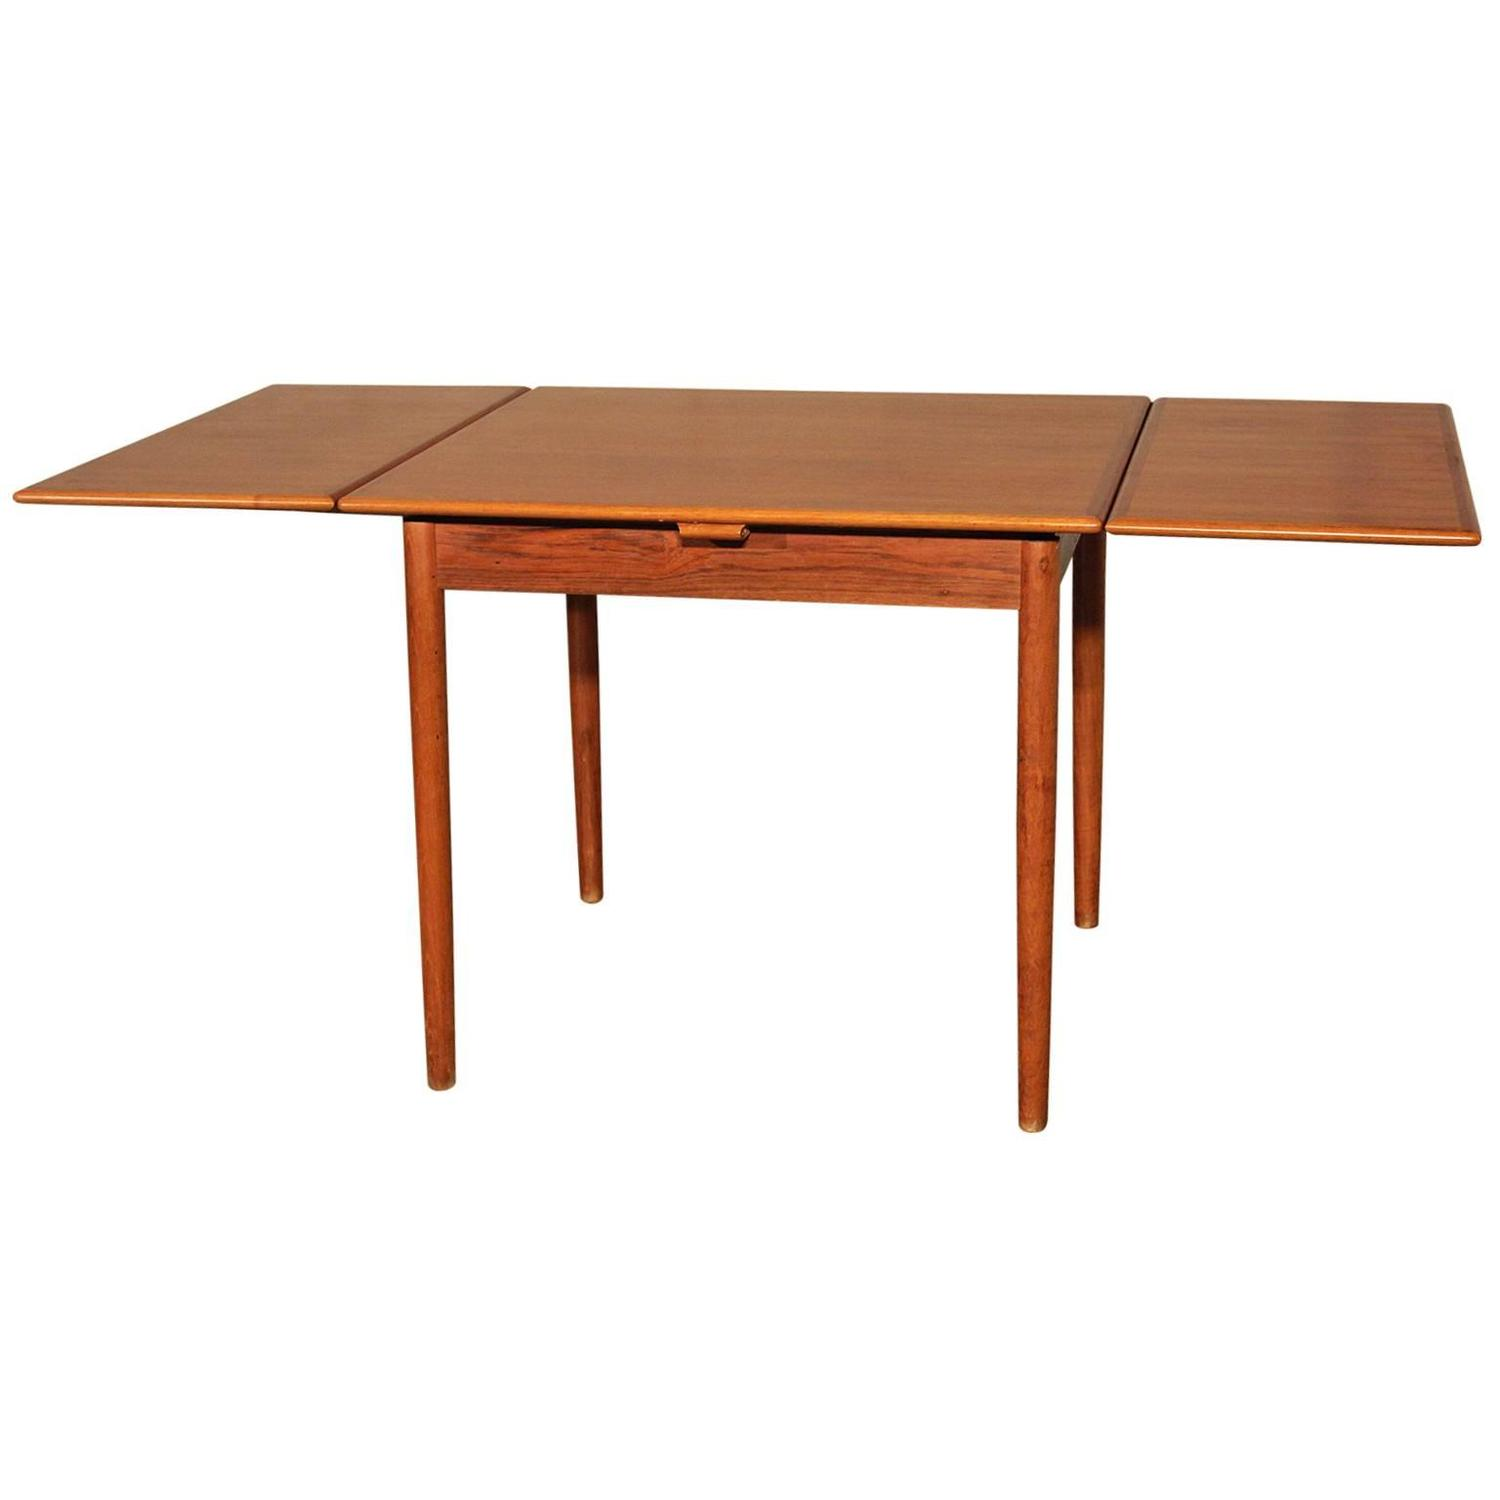 Danish Modern Teak Square Expanding Dining Table At 1stdibs